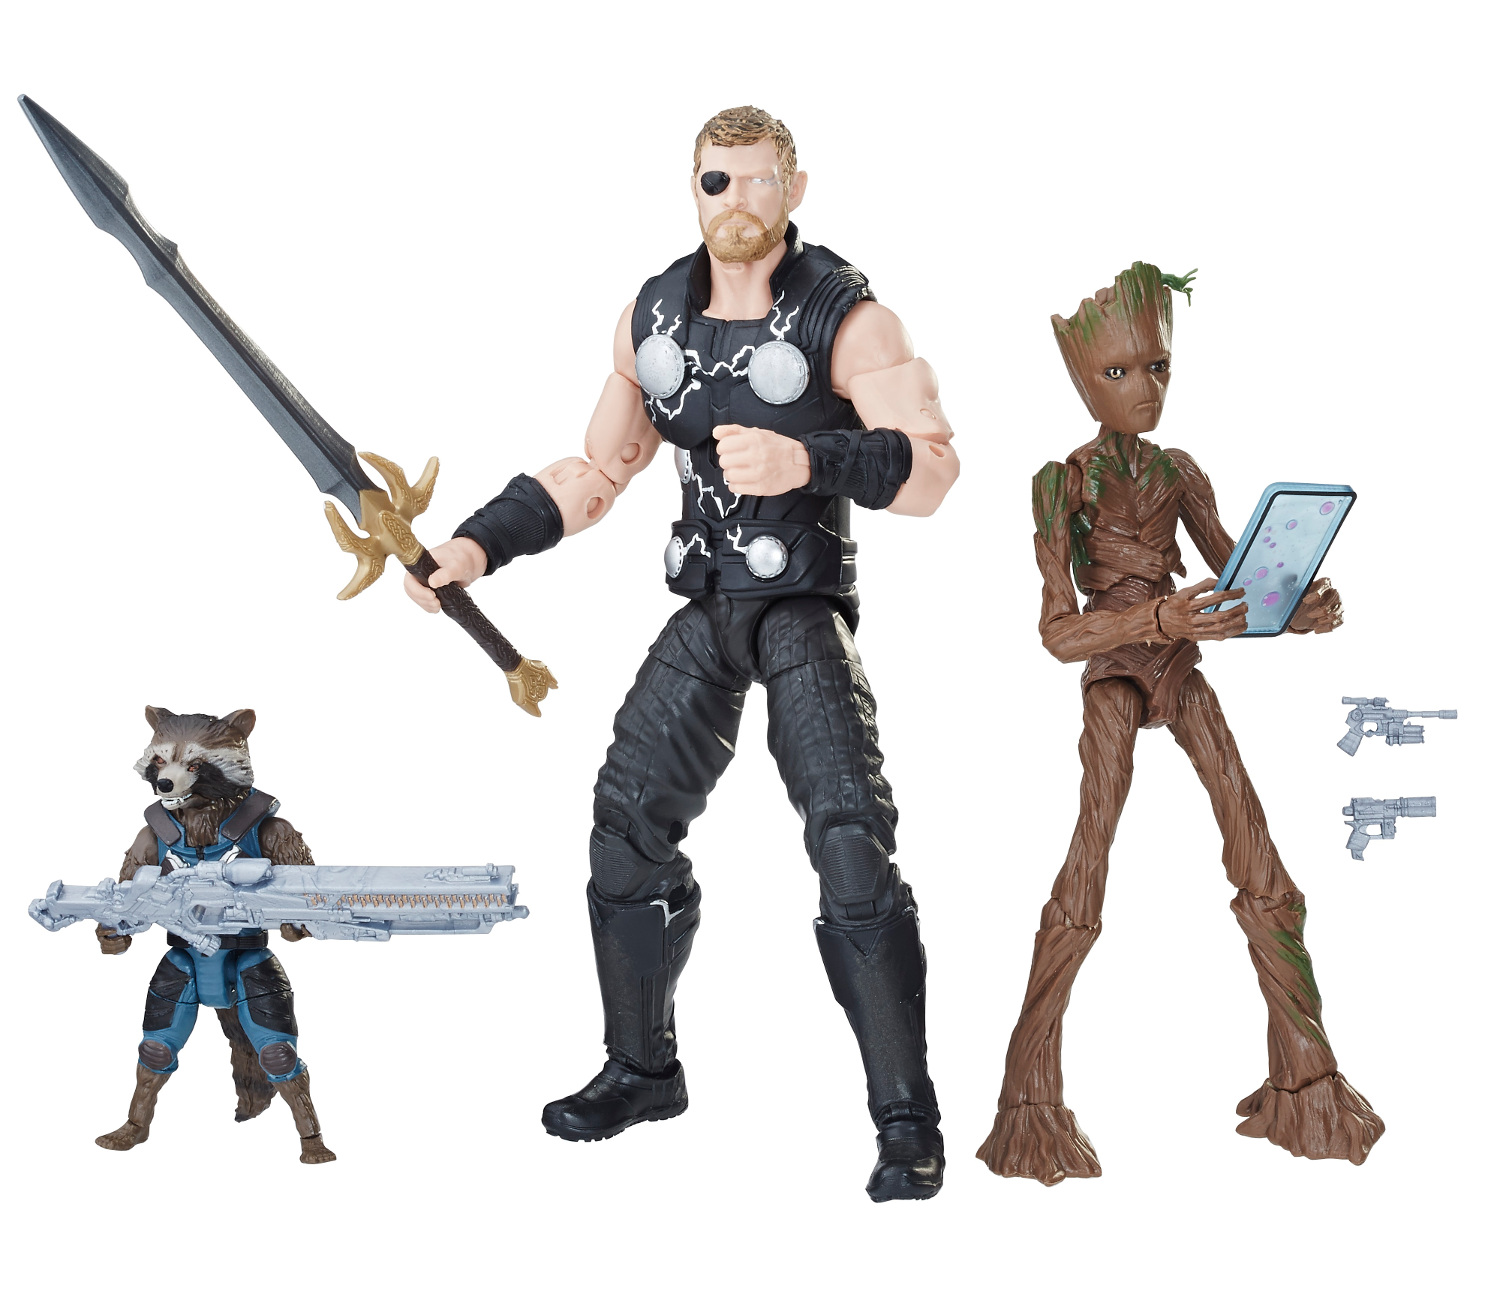 Marvel Legends (2012 - en cours) (Hasbro) - Page 4 6ItHBA4T_o